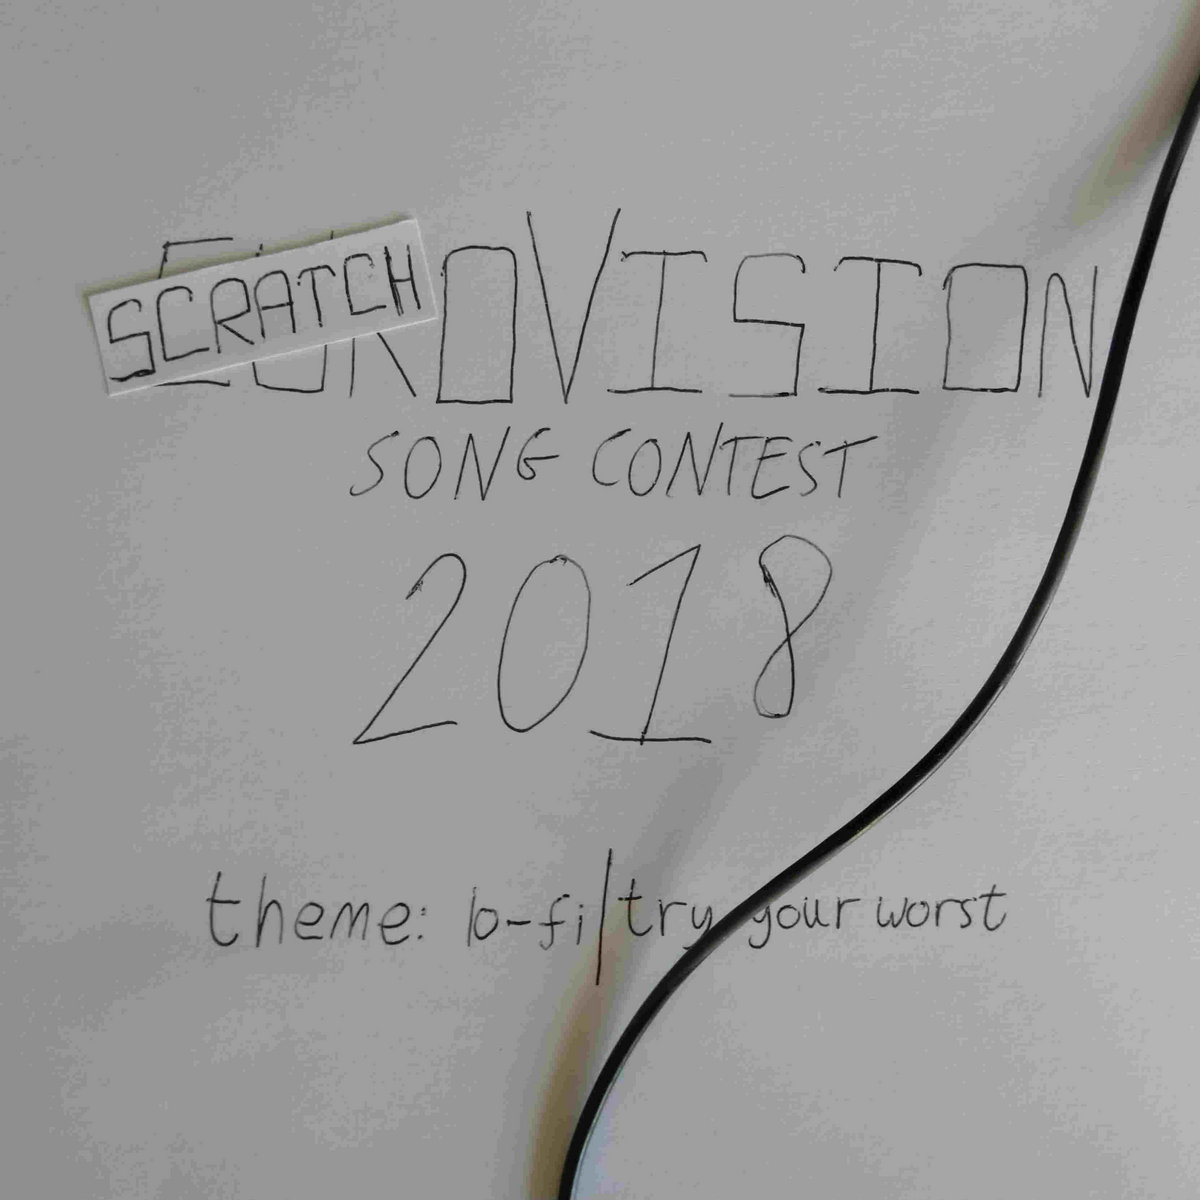 Scratchovision Song Contest 2018 (lo-fi)